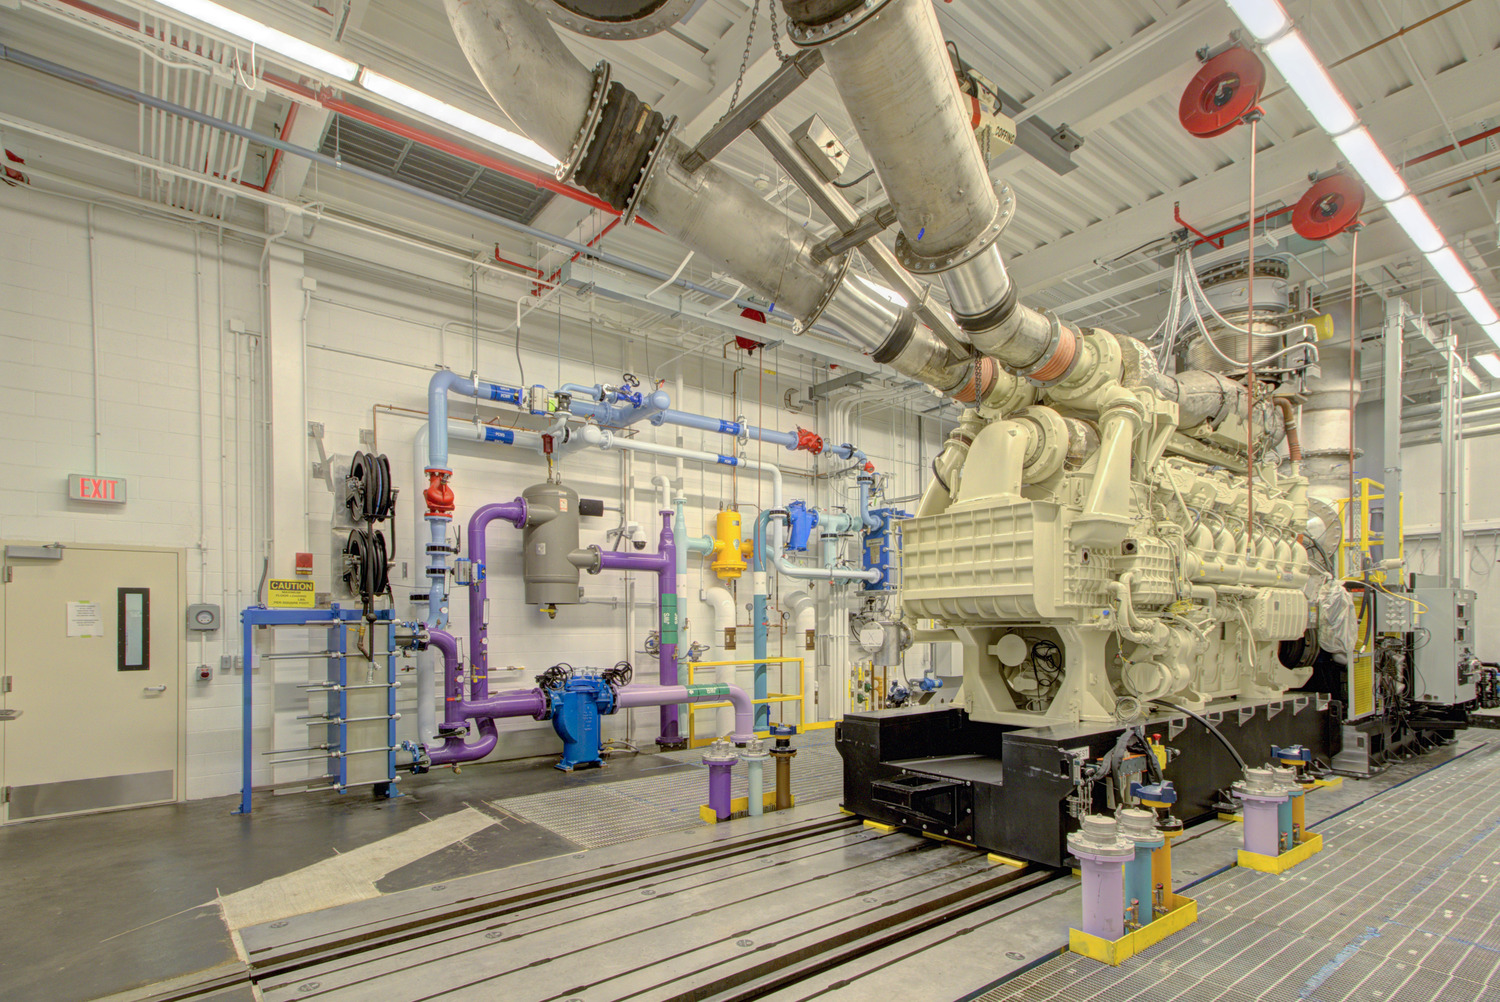 industrial automation process, tier 4 emissions test